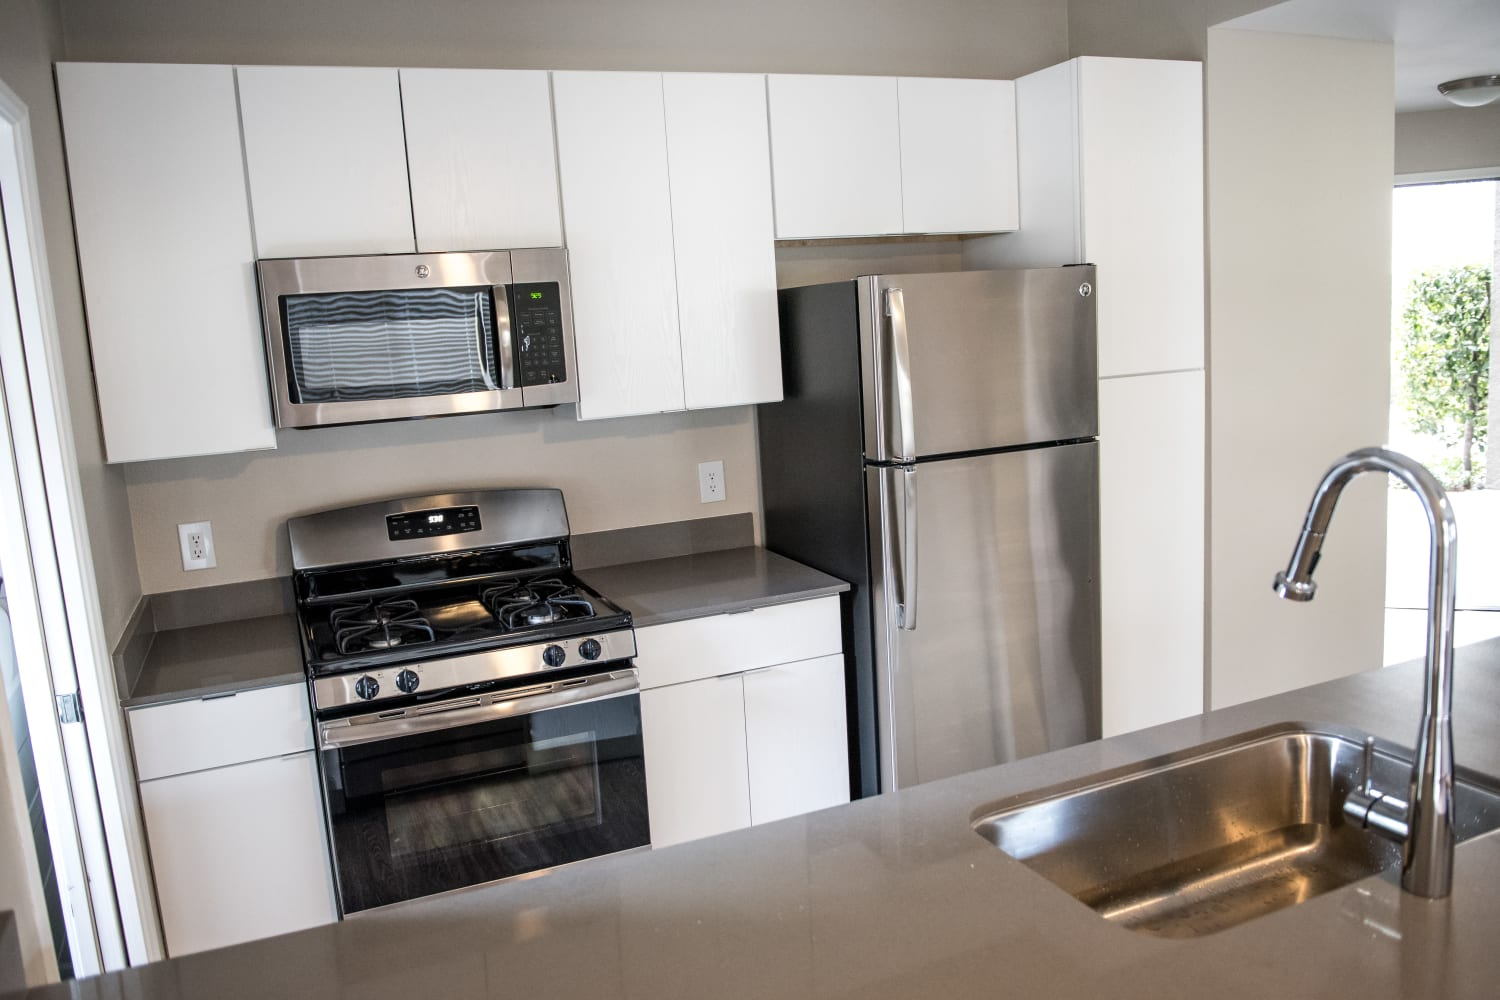 Madrid Apartments in Mission Viejo, California, offer modern kitchens with upgraded appliances